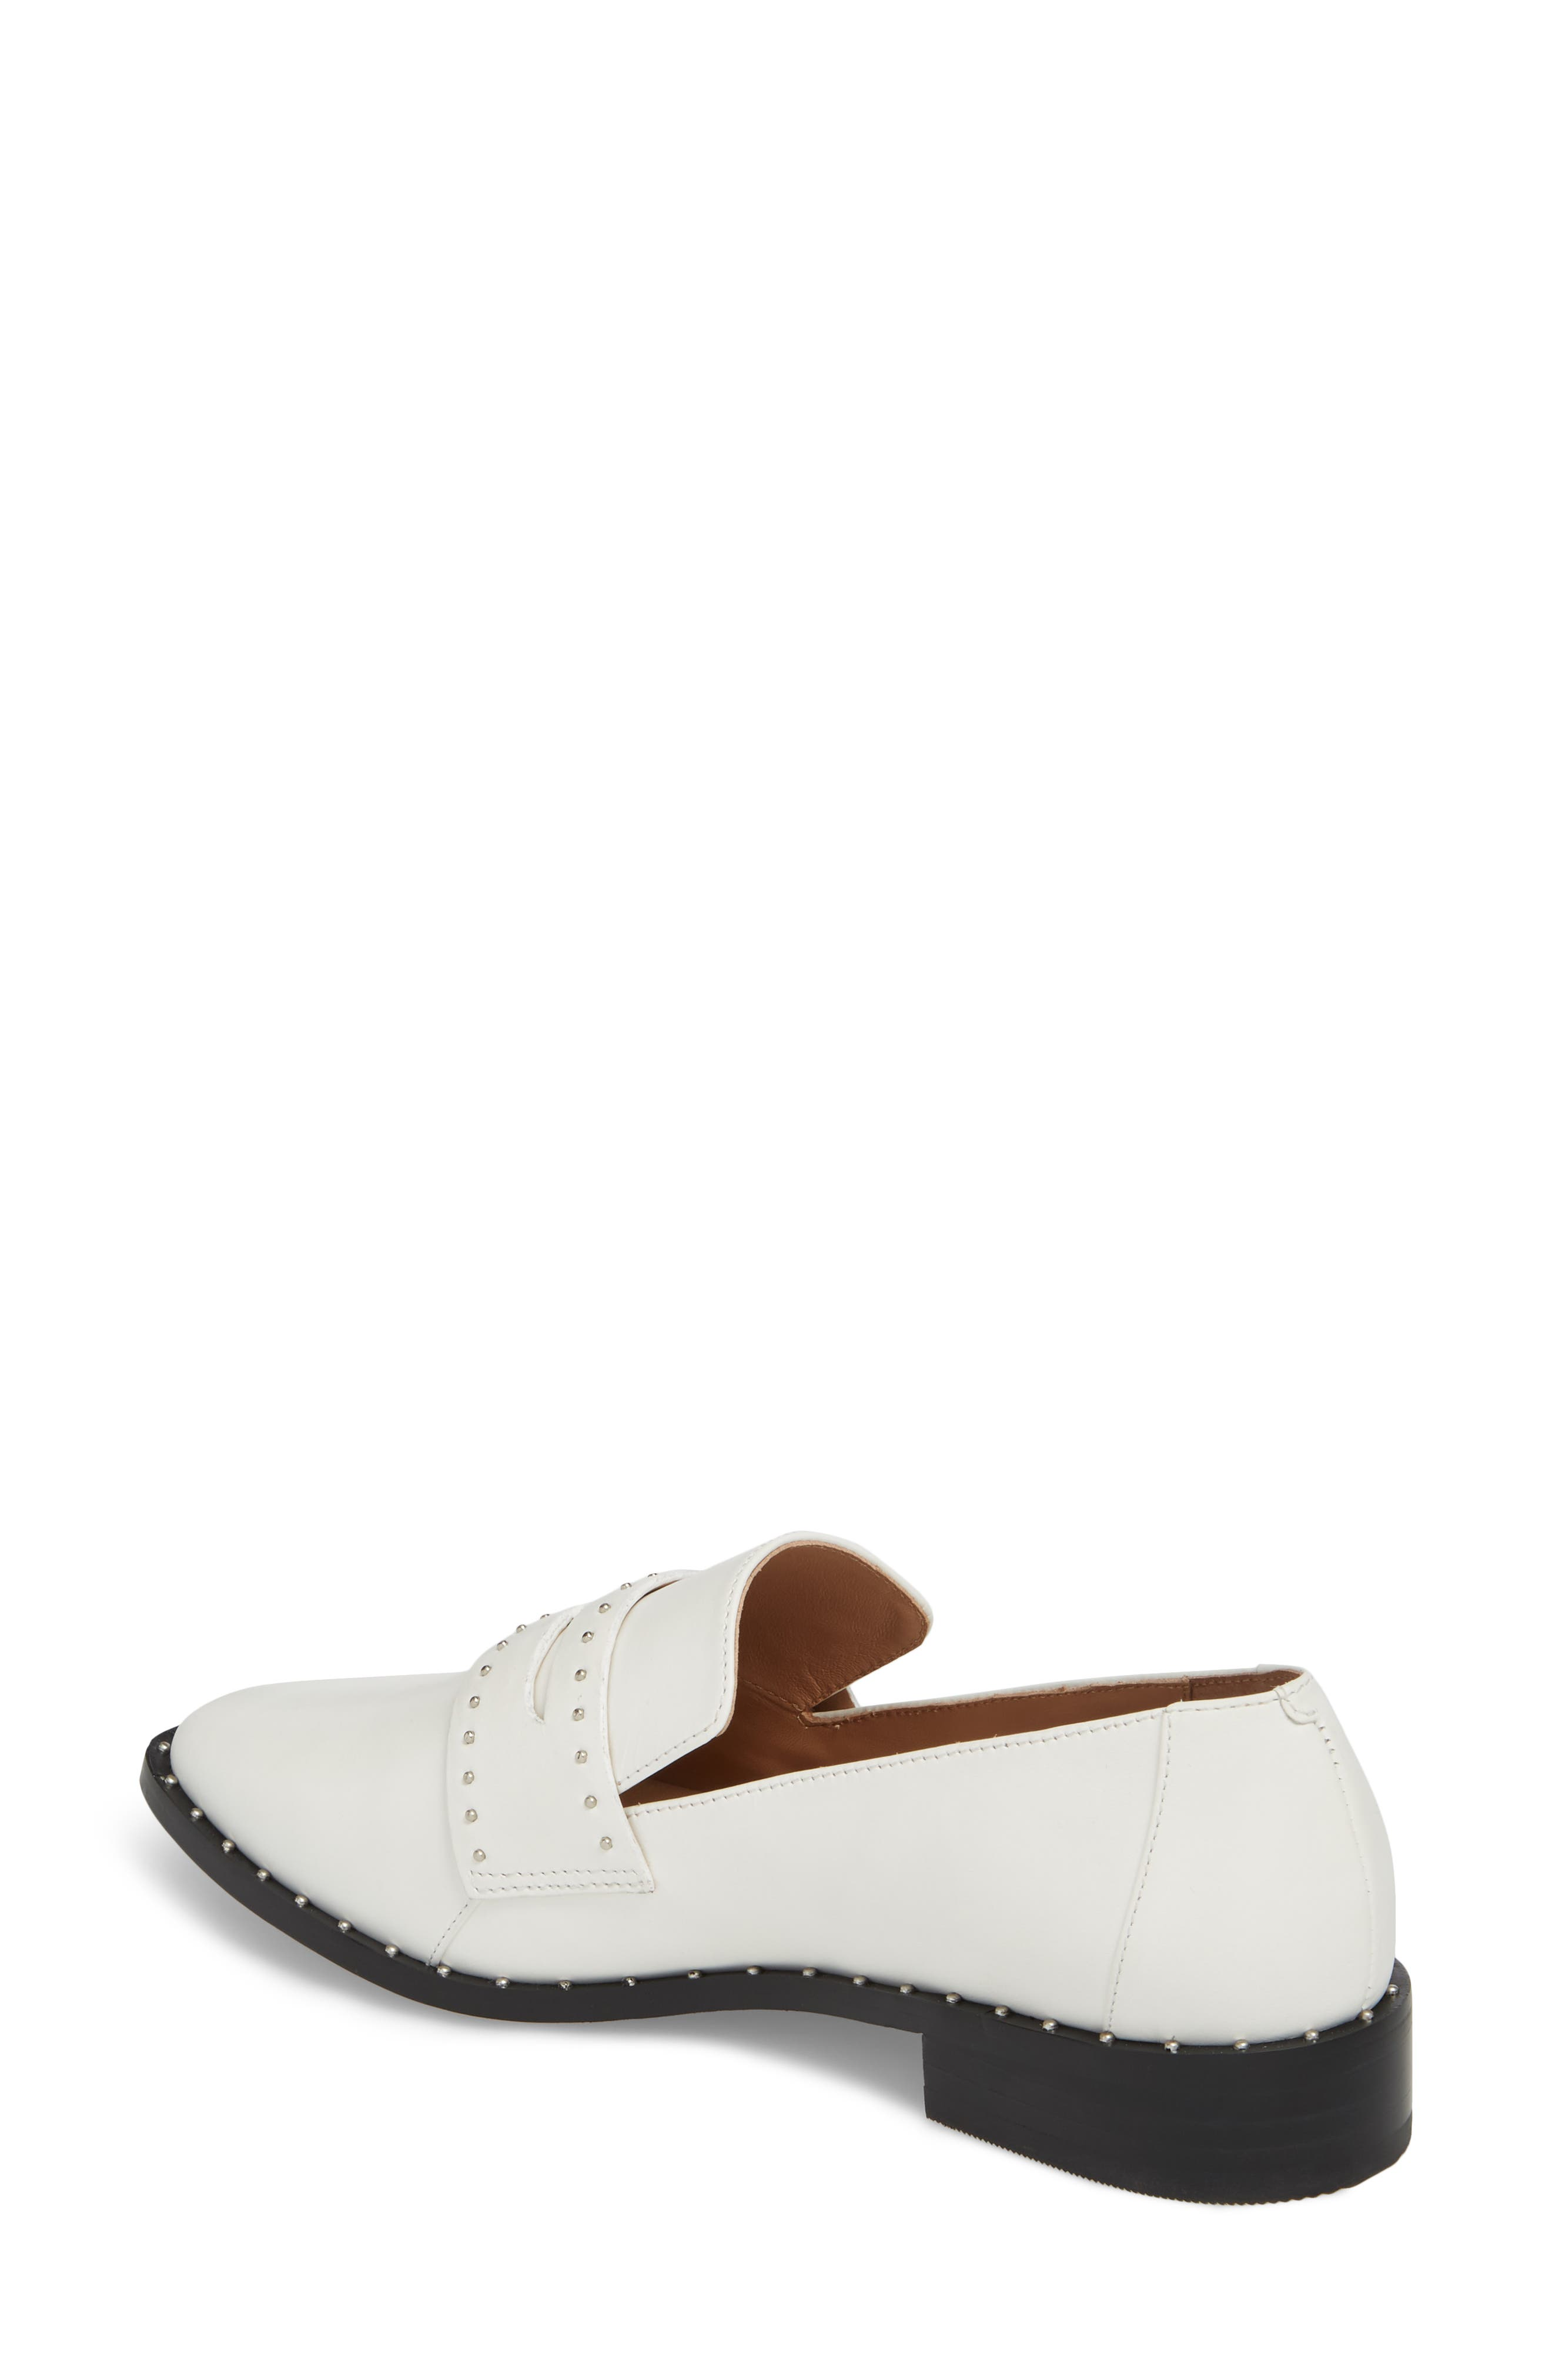 Tara Penny Loafer,                             Alternate thumbnail 2, color,                             Off White Leather